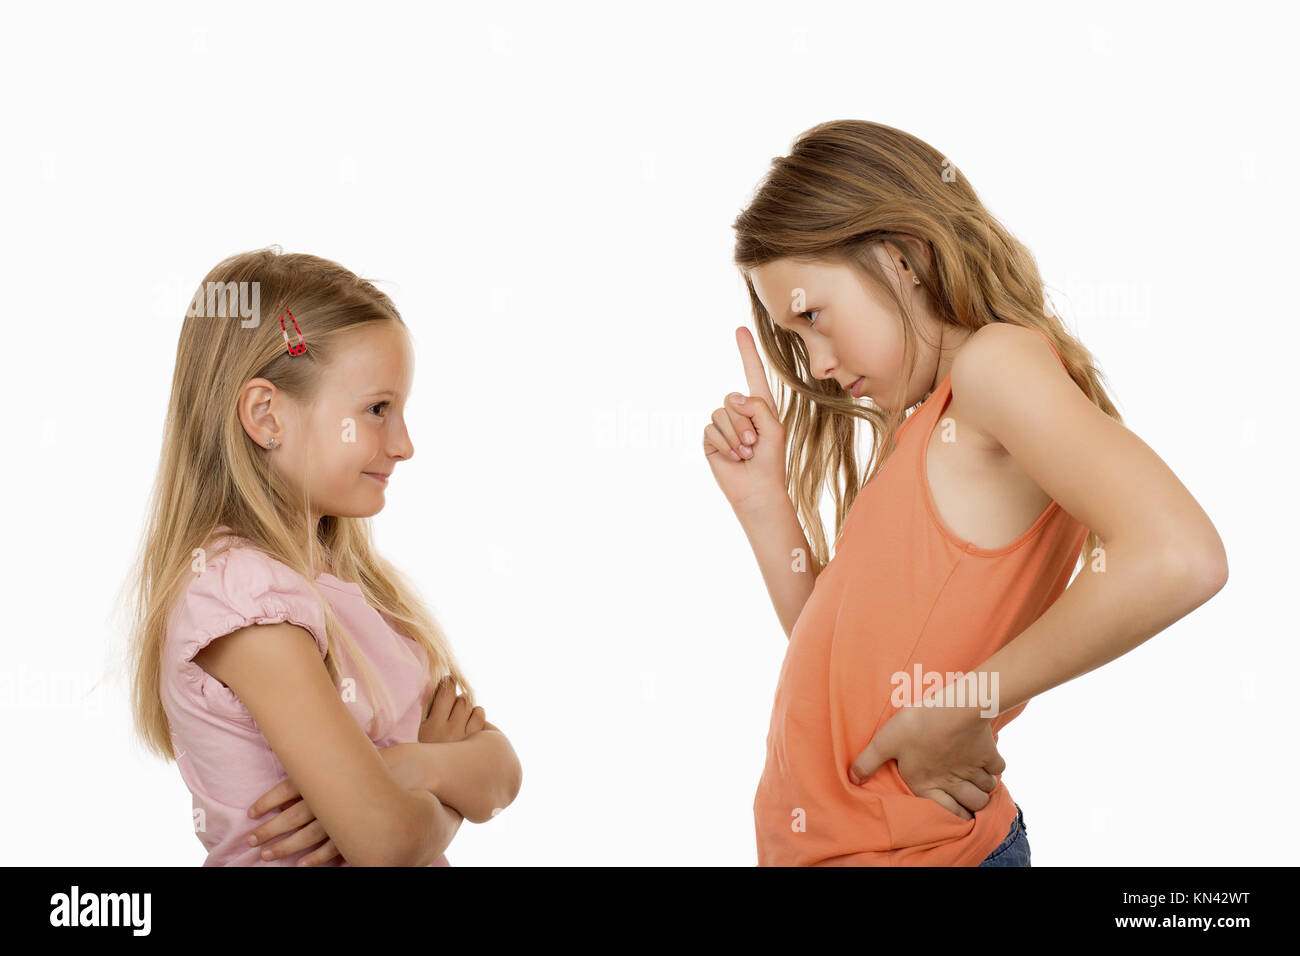 Big sister disagree pointing finger at her little sister because she did a silly, foolish, stupid thing or something - Stock Image